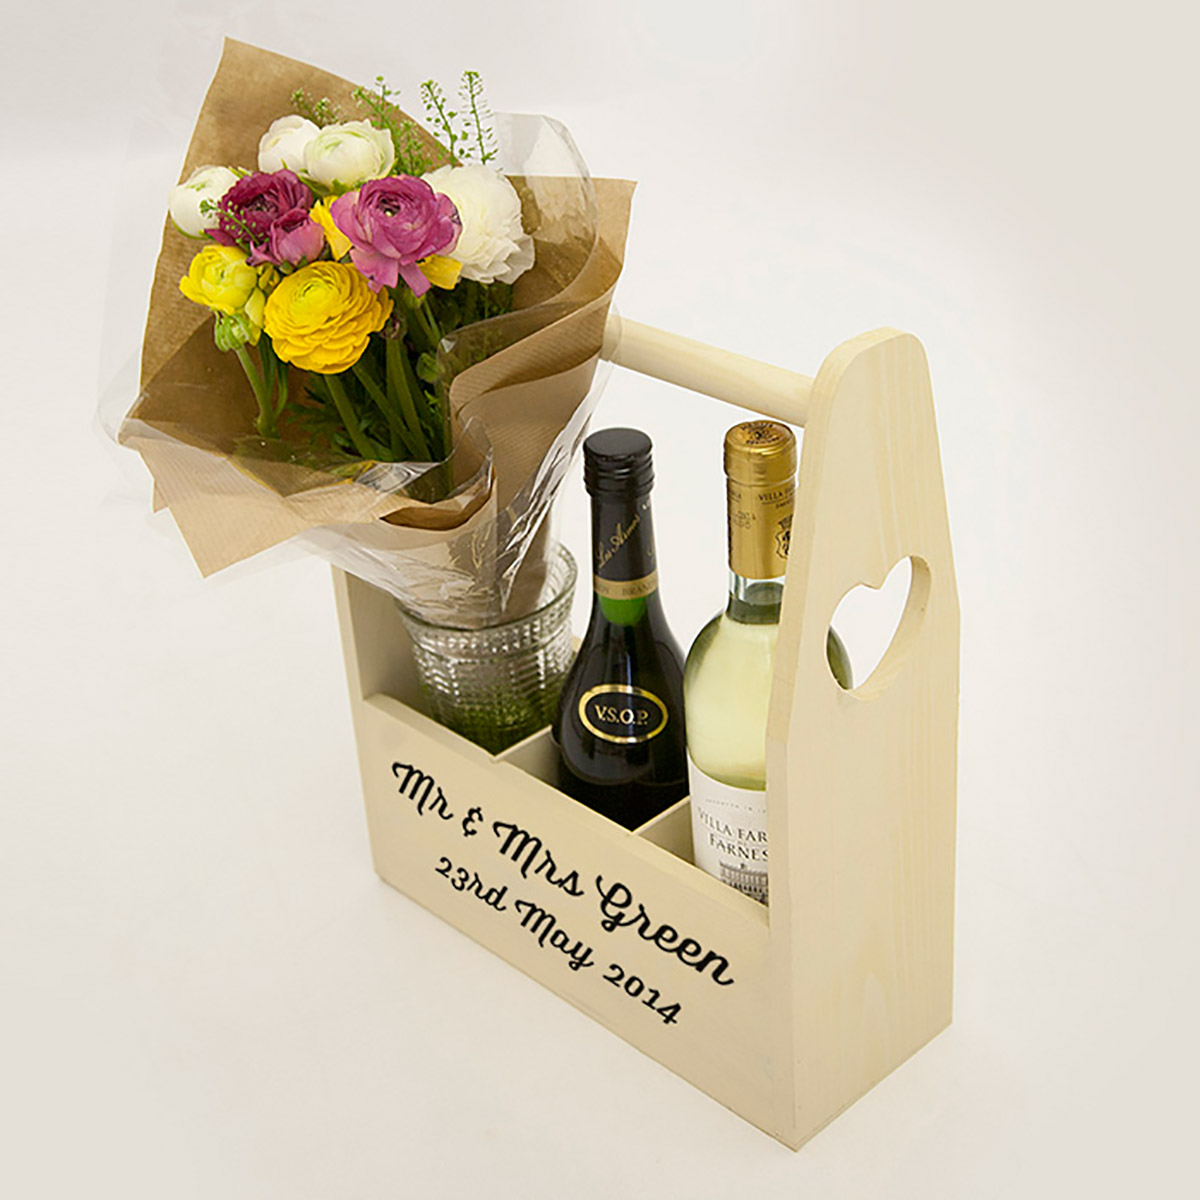 Wine Holders For Gifts Personalised Wine Holder Gettingpersonal Co Uk